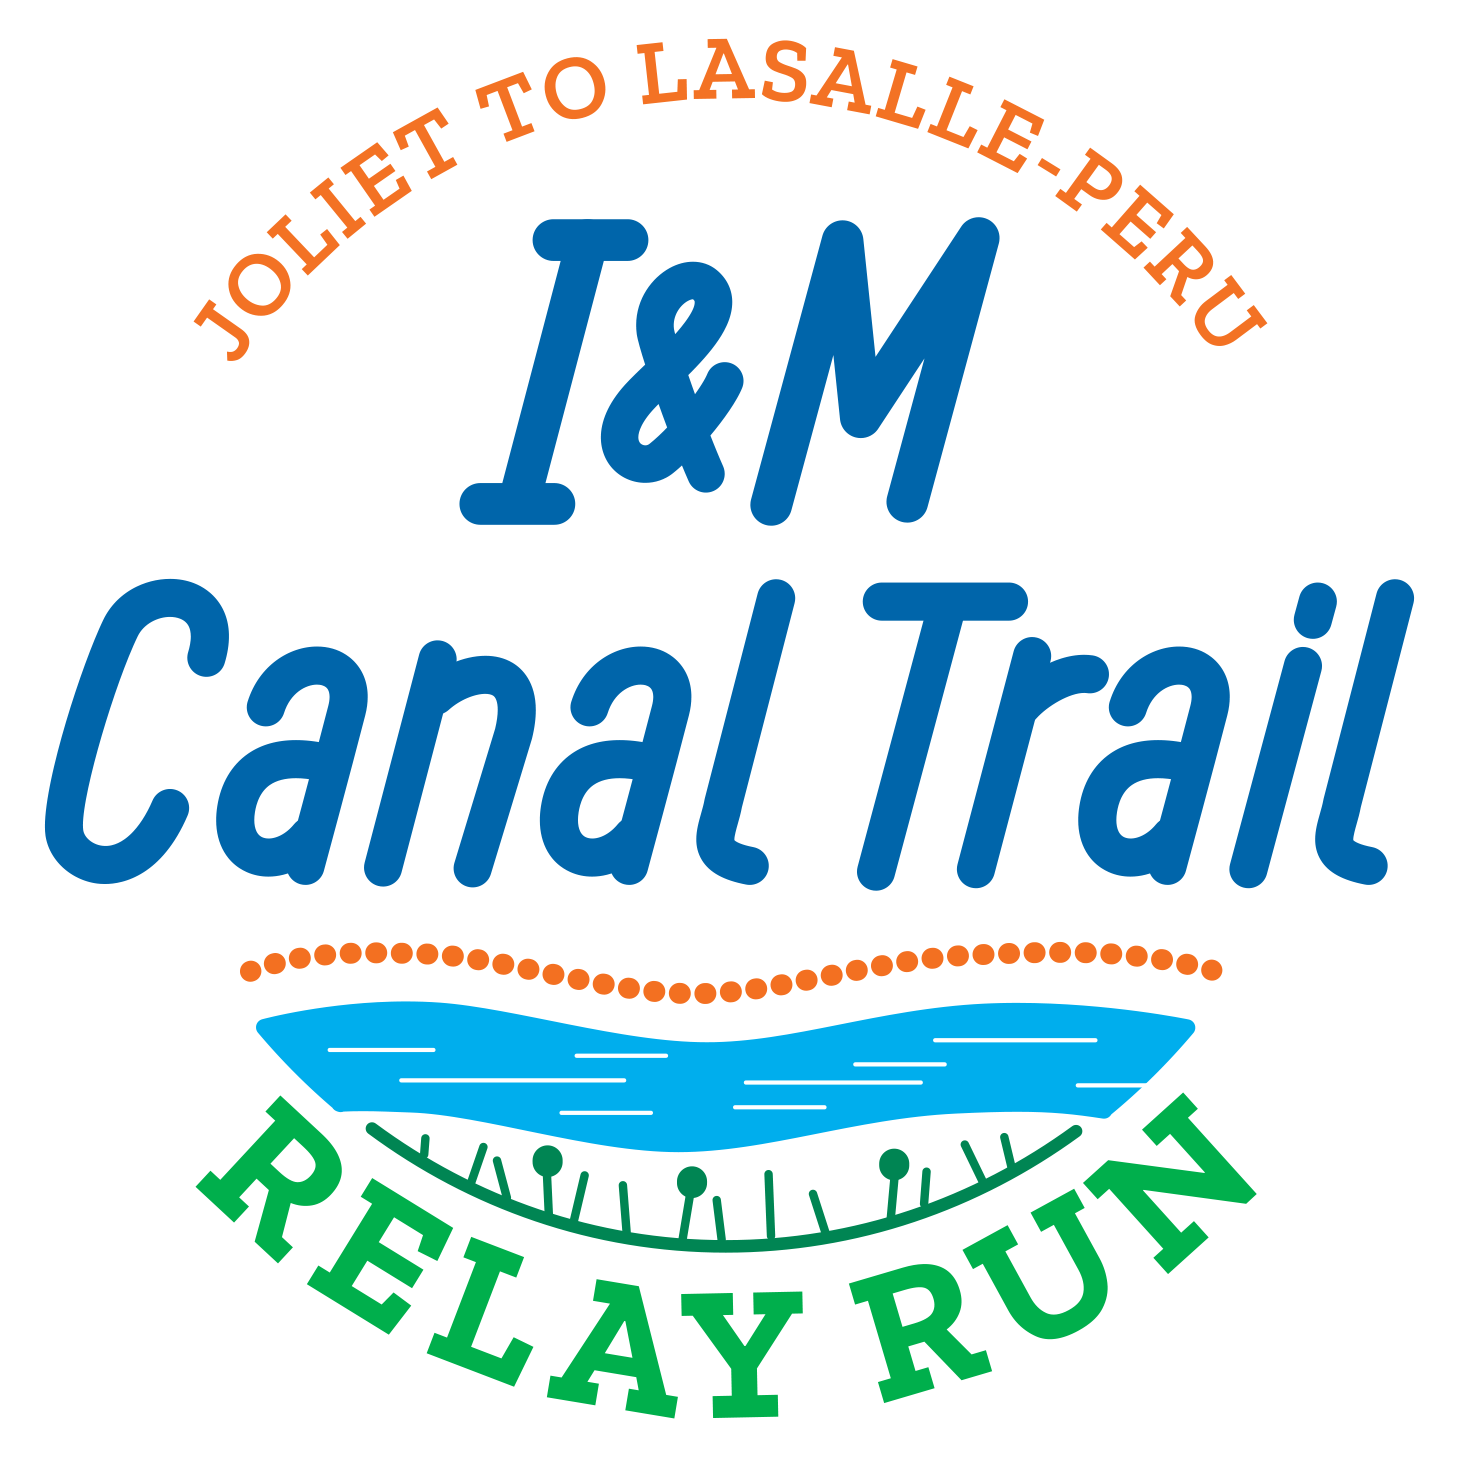 I&M Canal Trail Relay